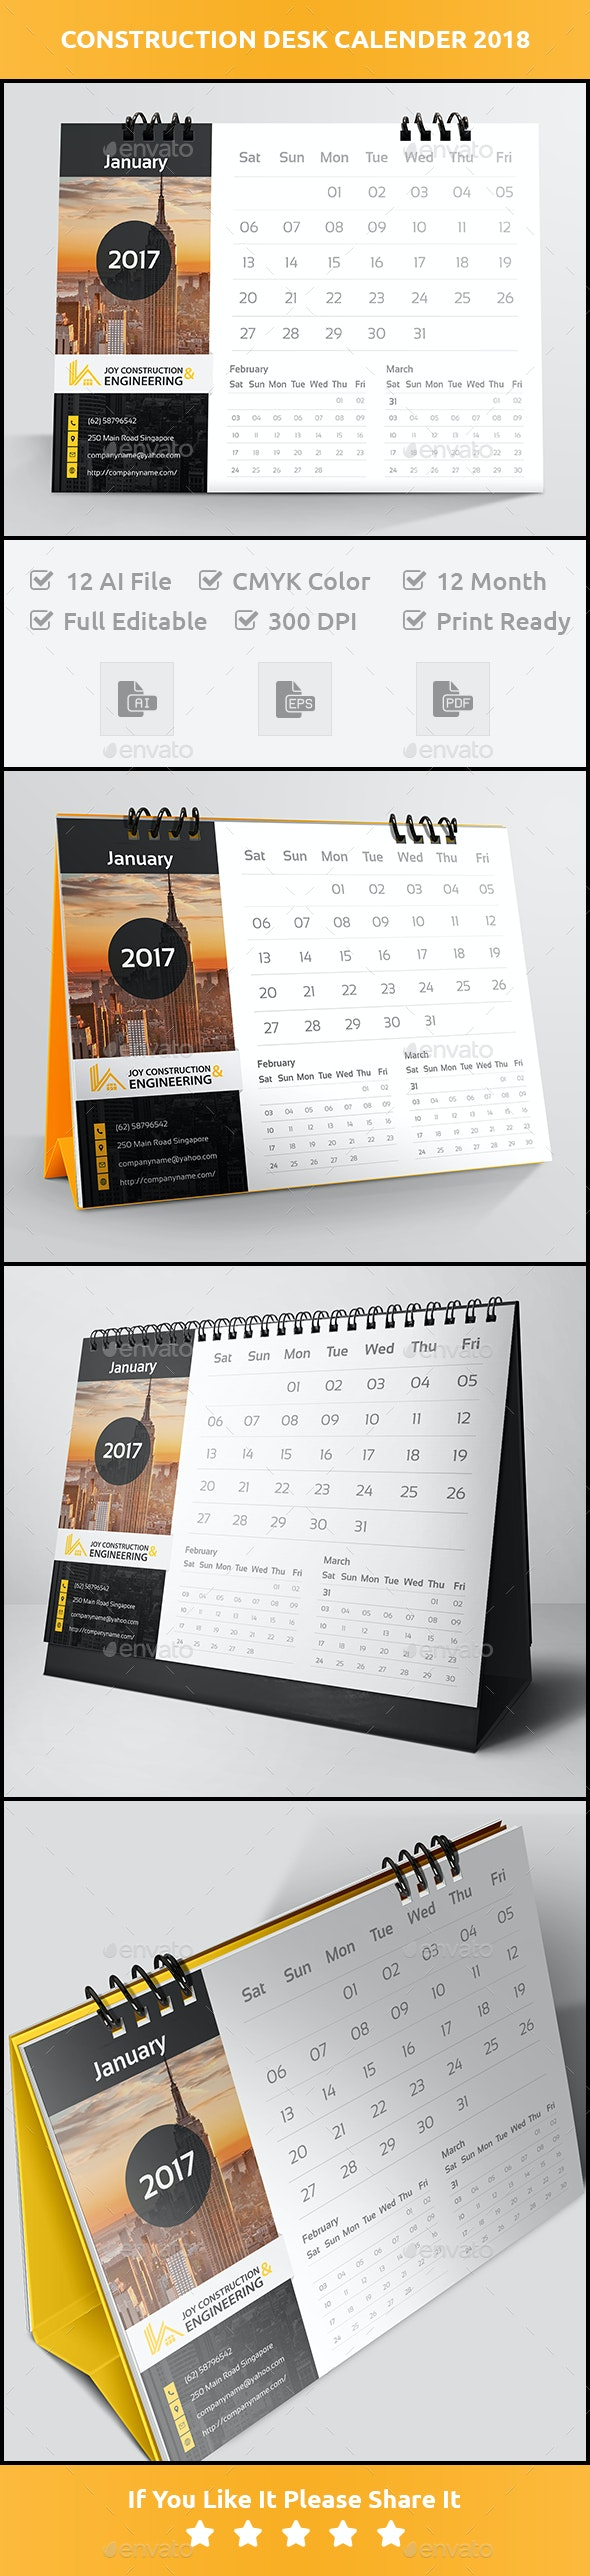 Construction Desk Calender 2018 - Calendars Stationery